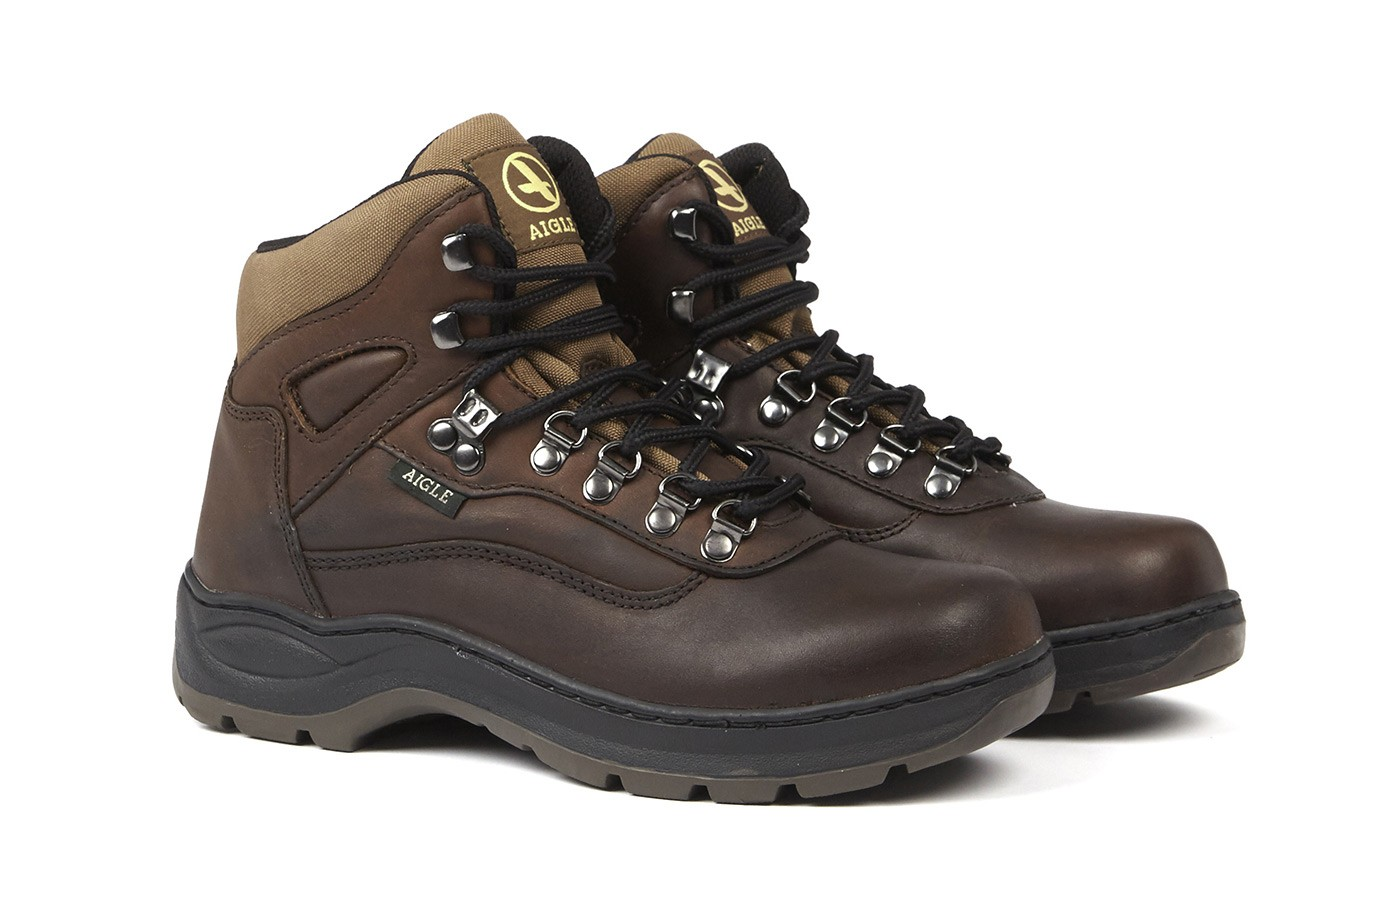 b585d465e8dac Chaussures Outdoor Aigle Picardie - Chaussures de loisir   Made in Chasse